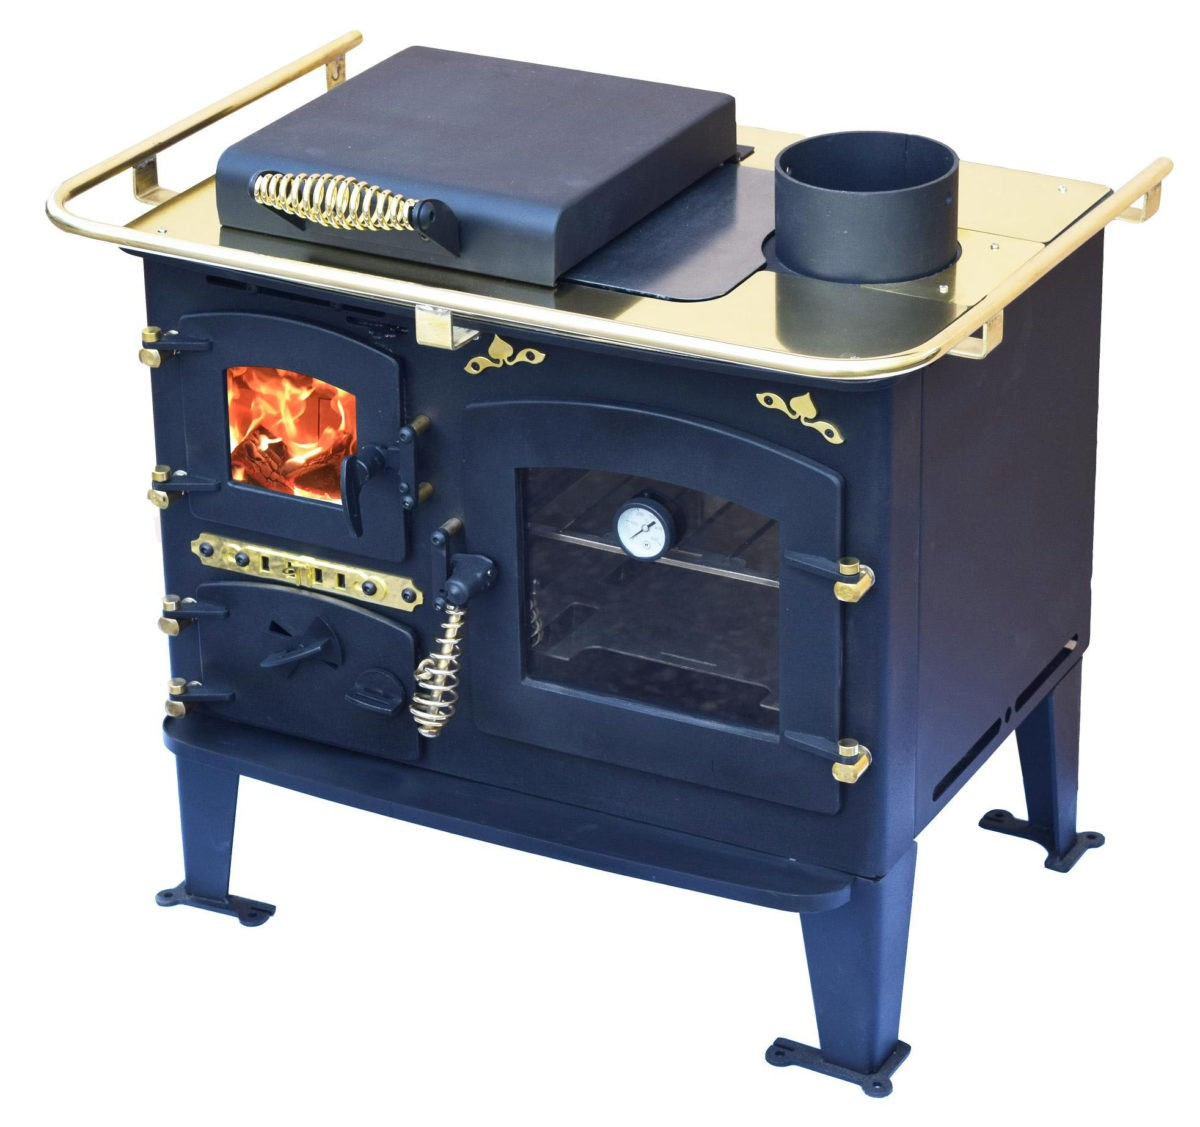 Solid fuel back cabin cooker